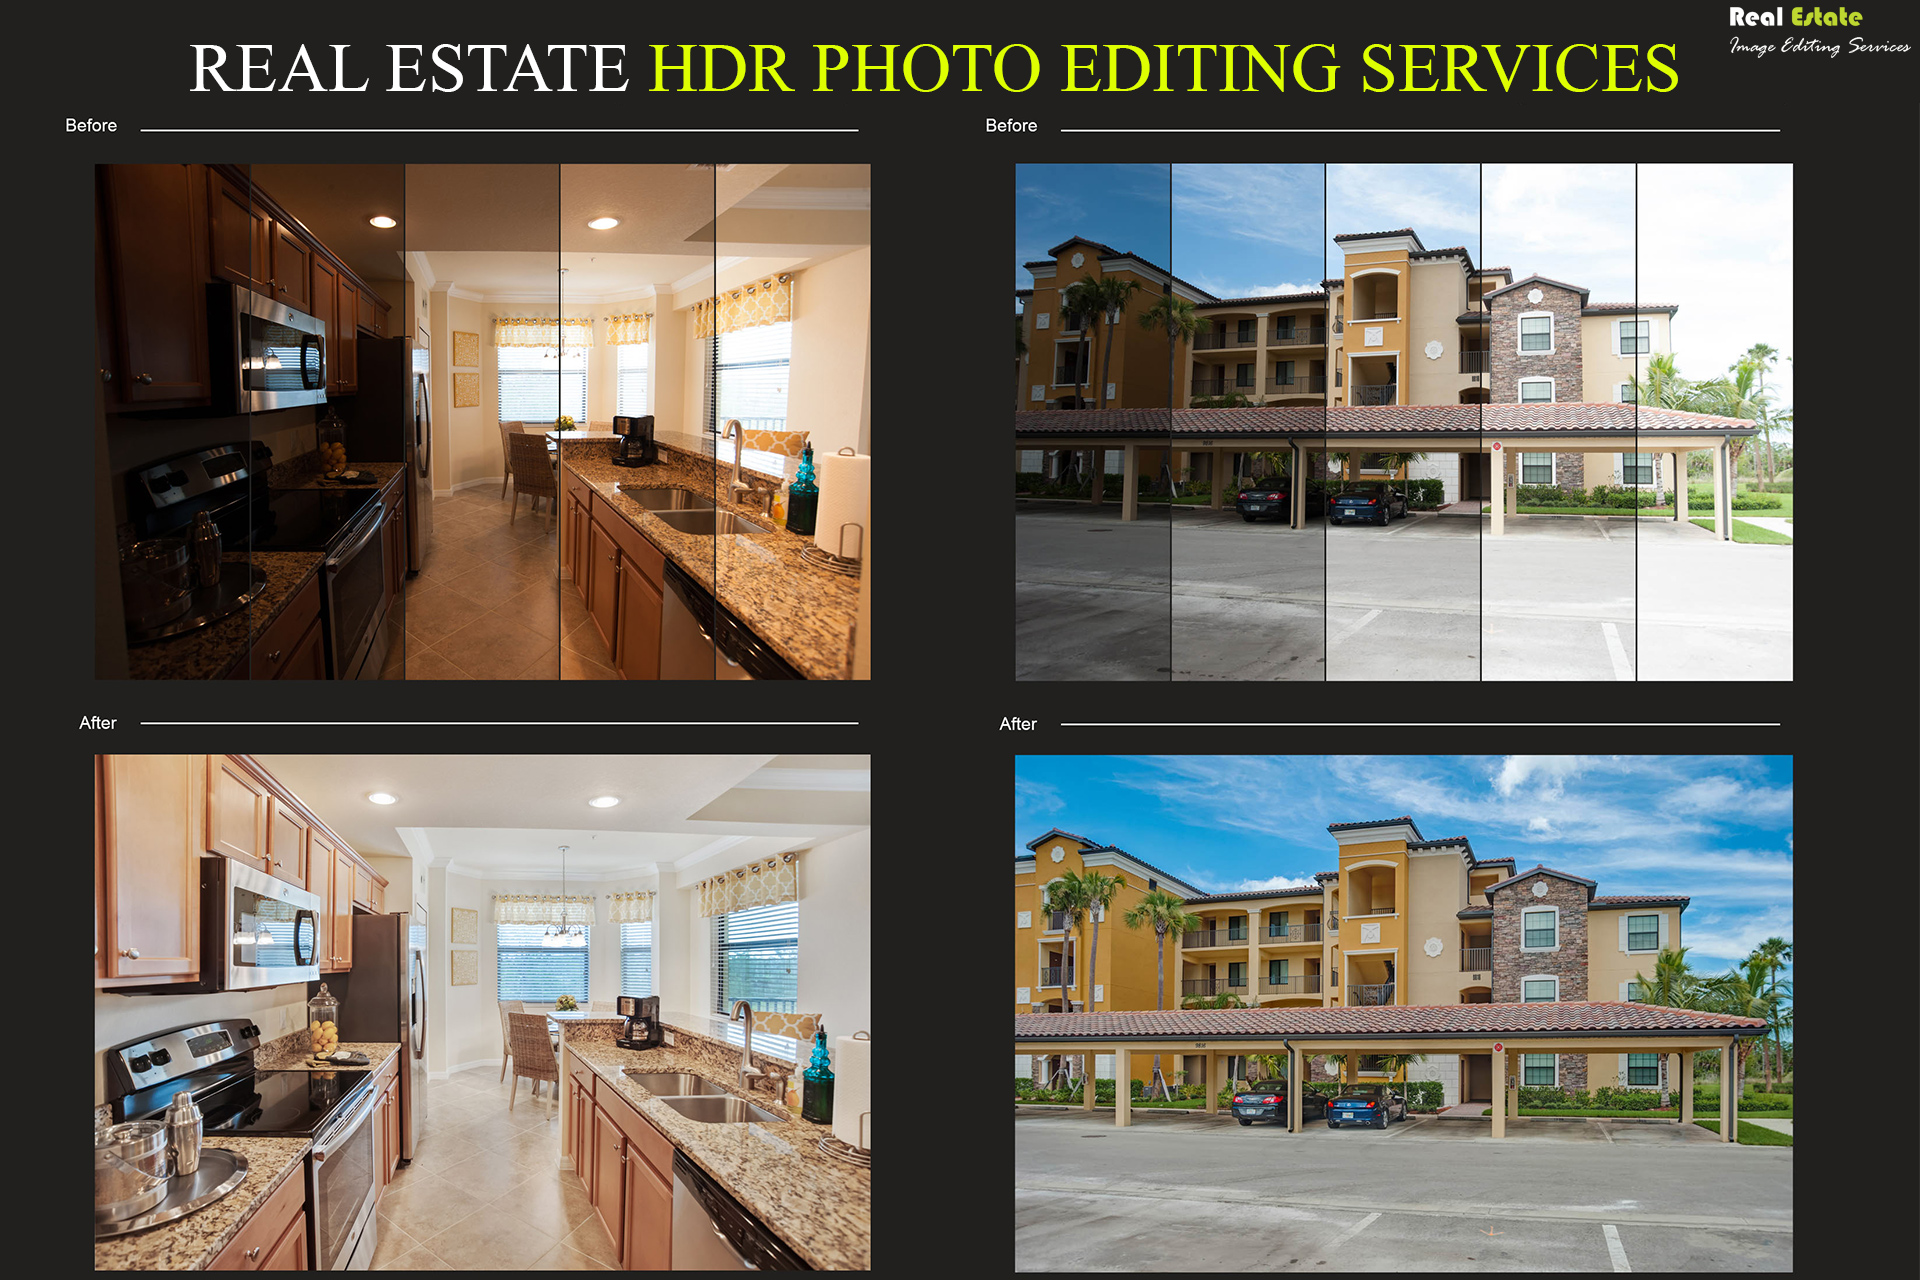 HDR Photo Editing Services